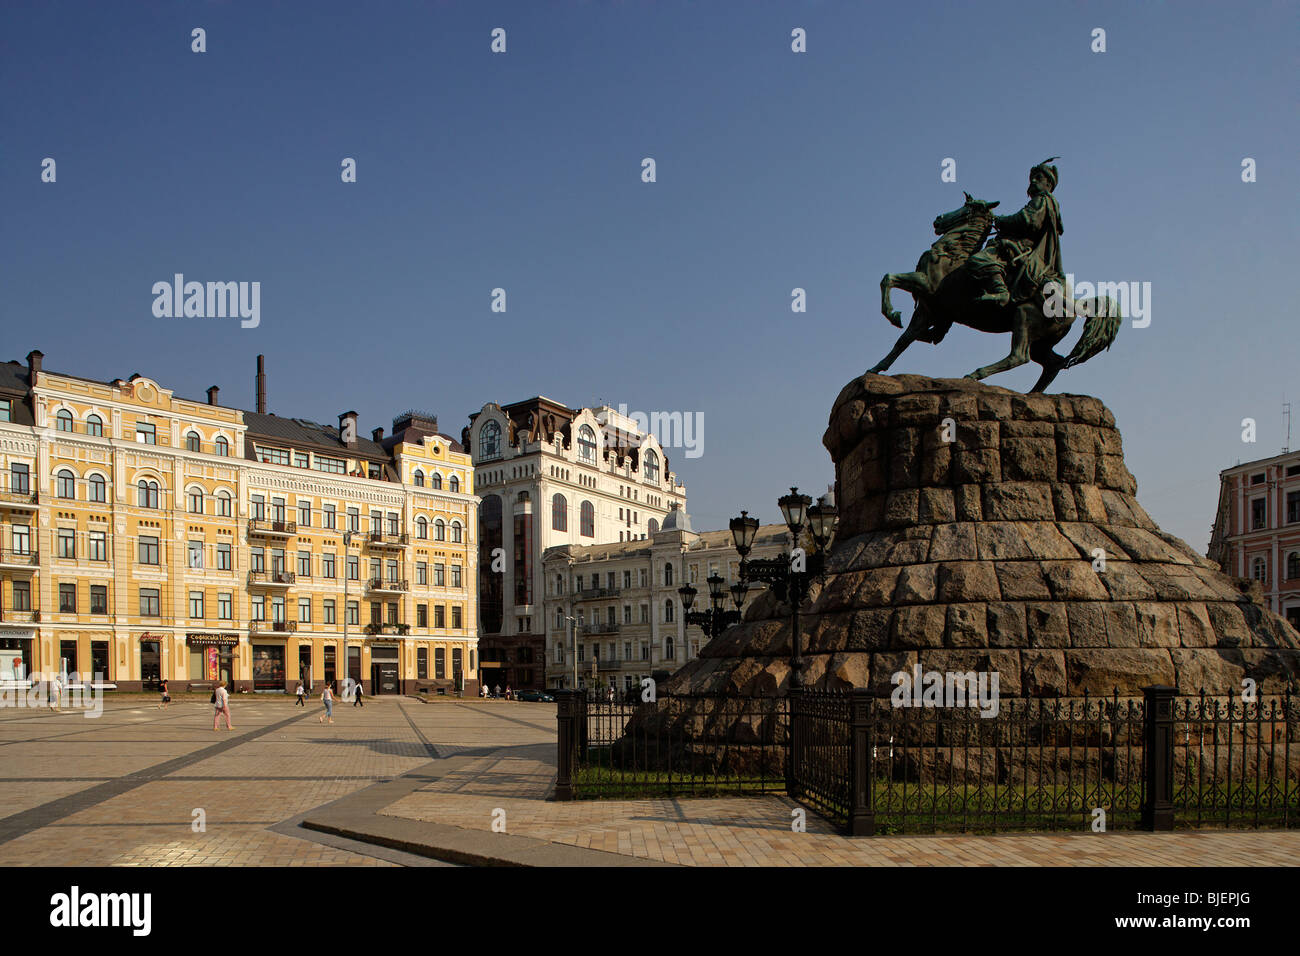 Sophia Square: history, architectural monuments, events 58